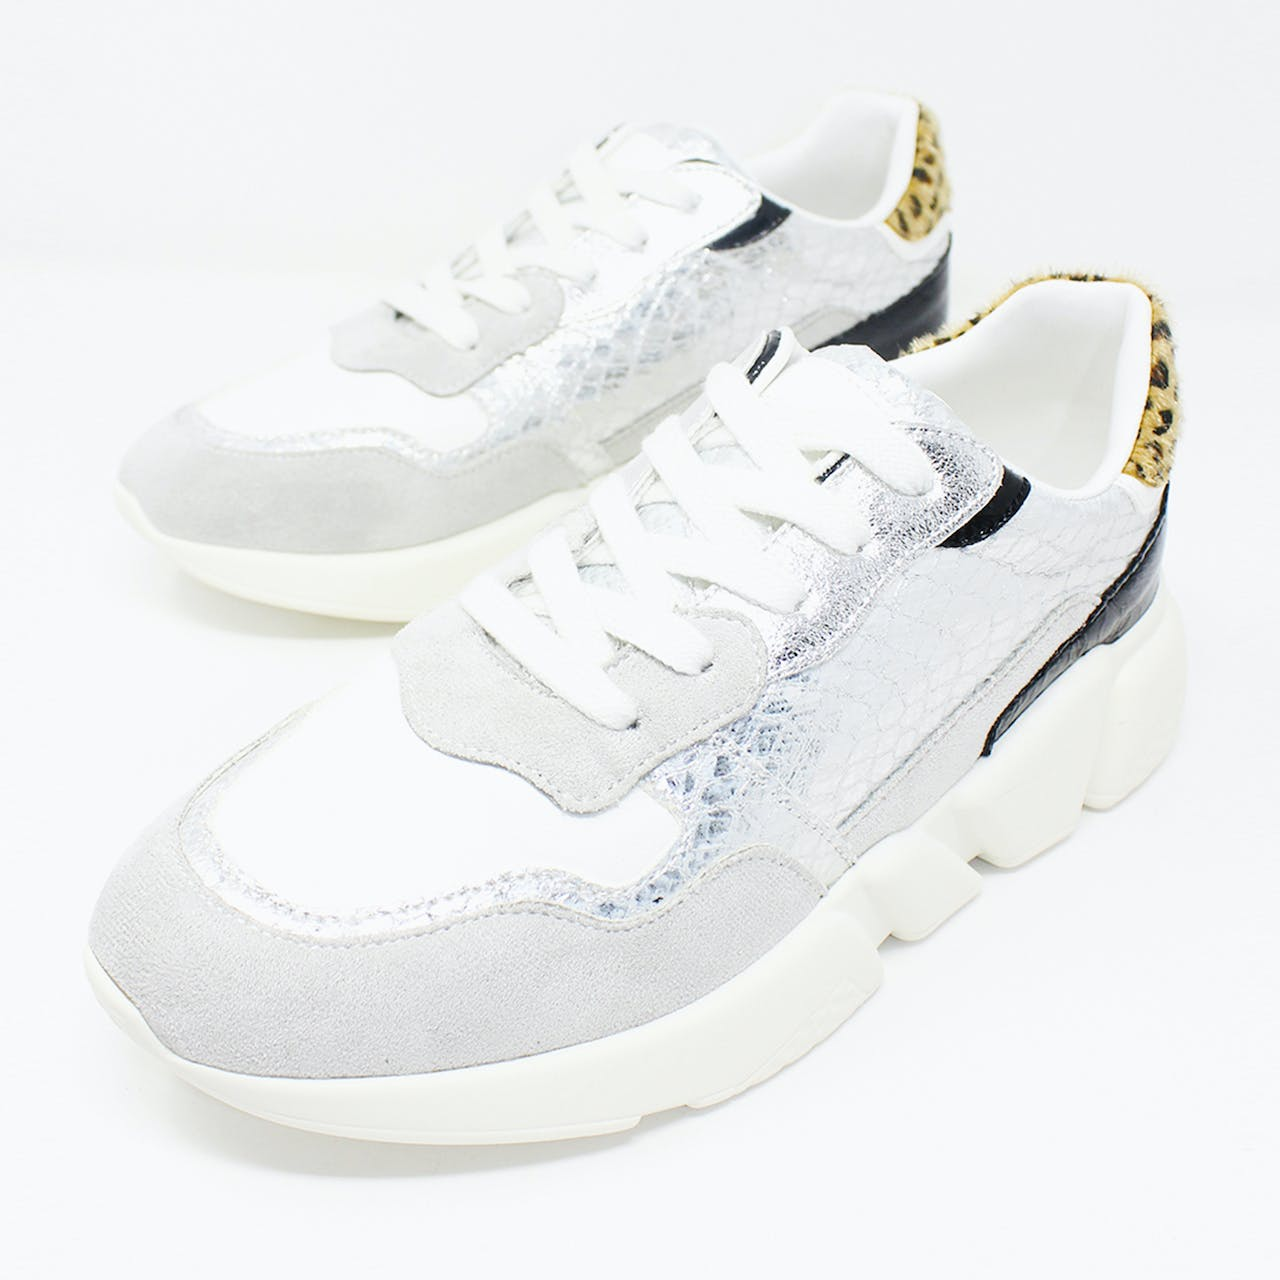 SILVER SNAKESKIN TRAINER WITH CHUNKY RUBBER SOLE